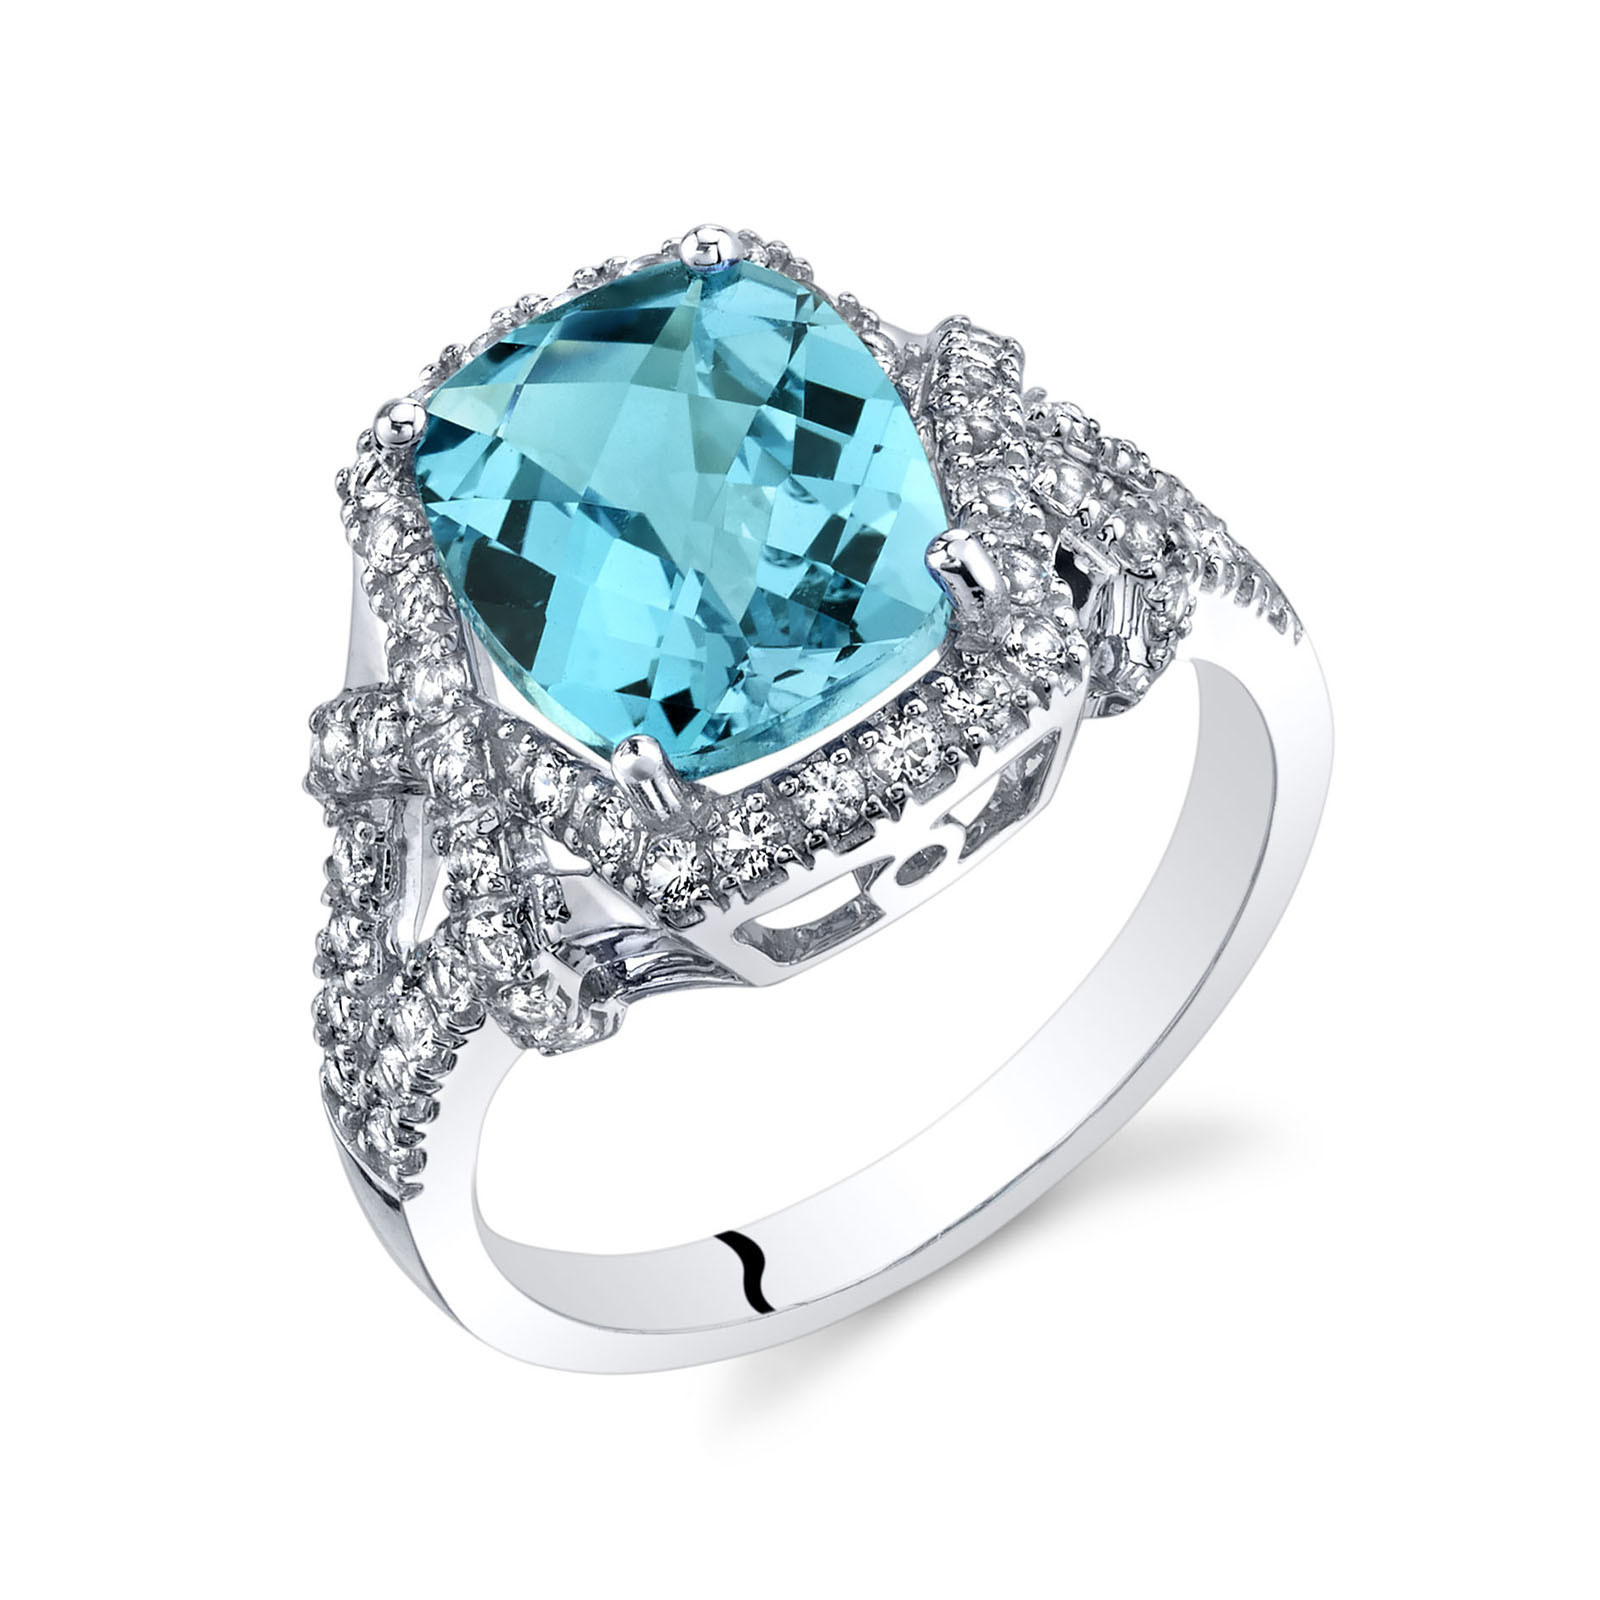 Cushion Cut Swiss Blue Topaz White Topaz Cocktail Statement Ring In 9ct White Gold